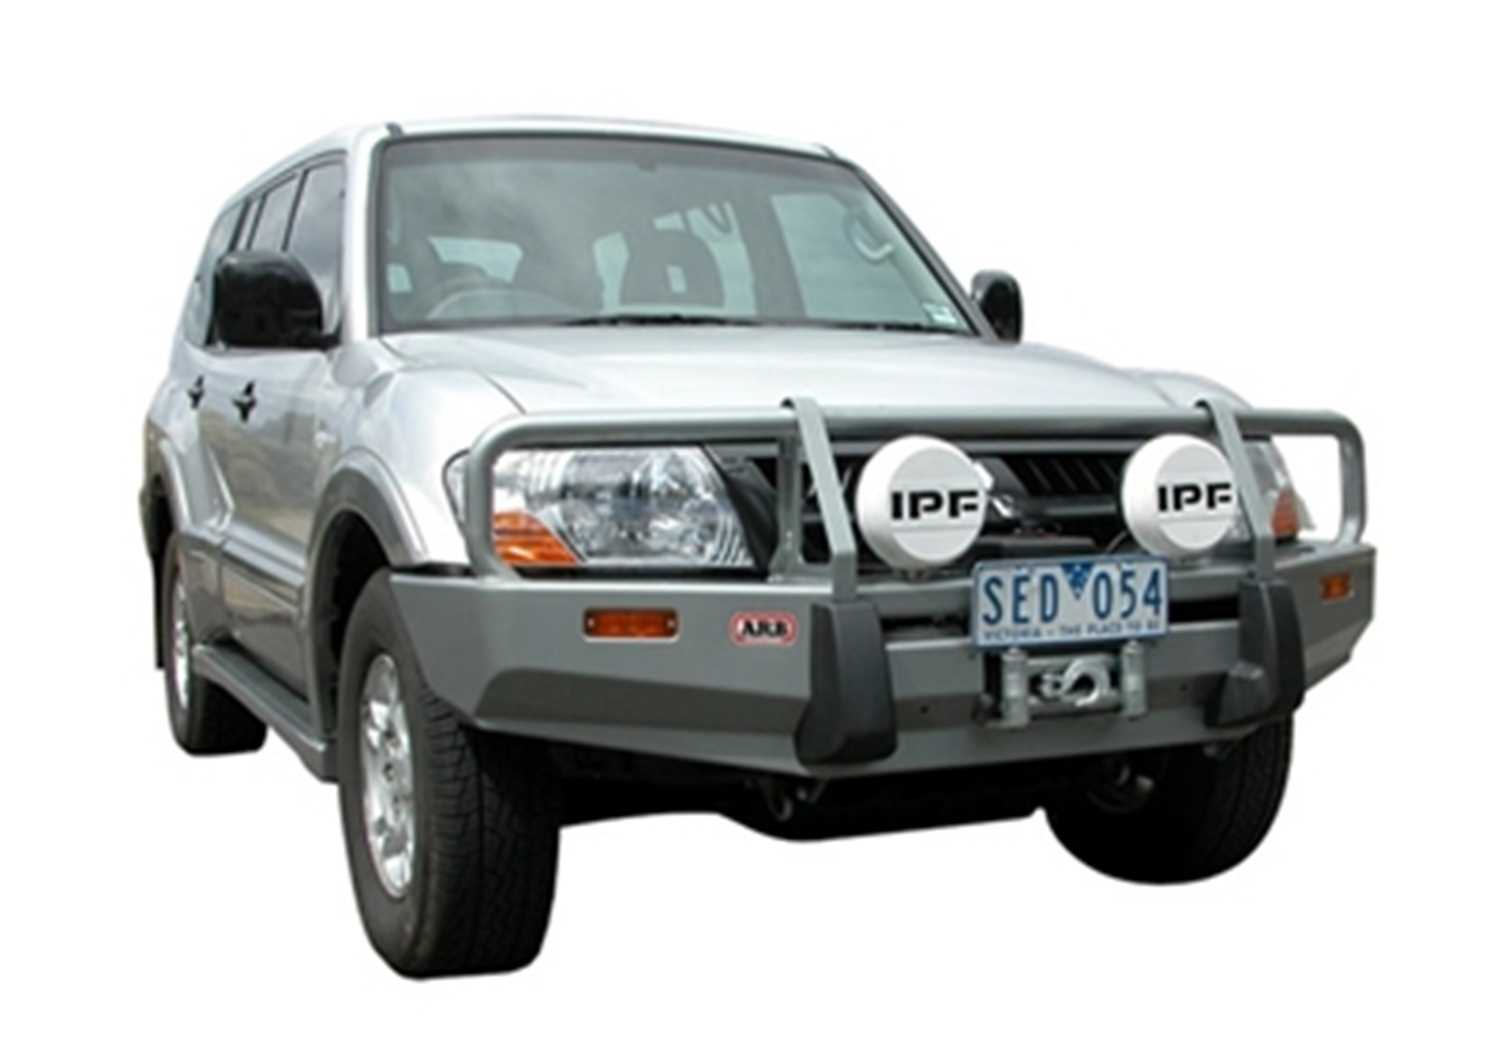 3434060 Arb 4x4 Accessories Front Deluxe Bull Bar Winch Mount Bumper 3434060